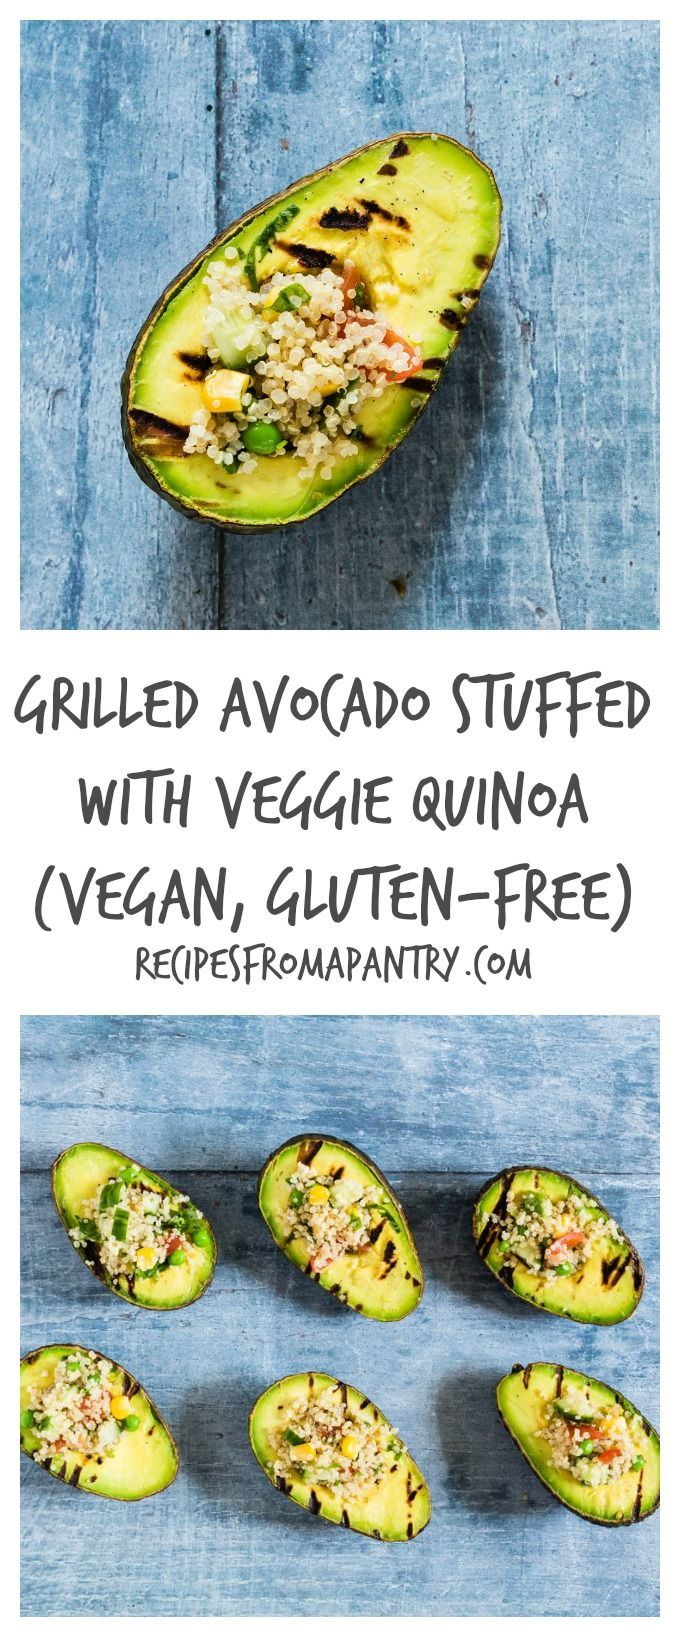 This grilled avocado stuffed with veggie quinoa is a fun veggie BBQ recipe. This is vegan and gluten-free too. Recipesfromapantry.com